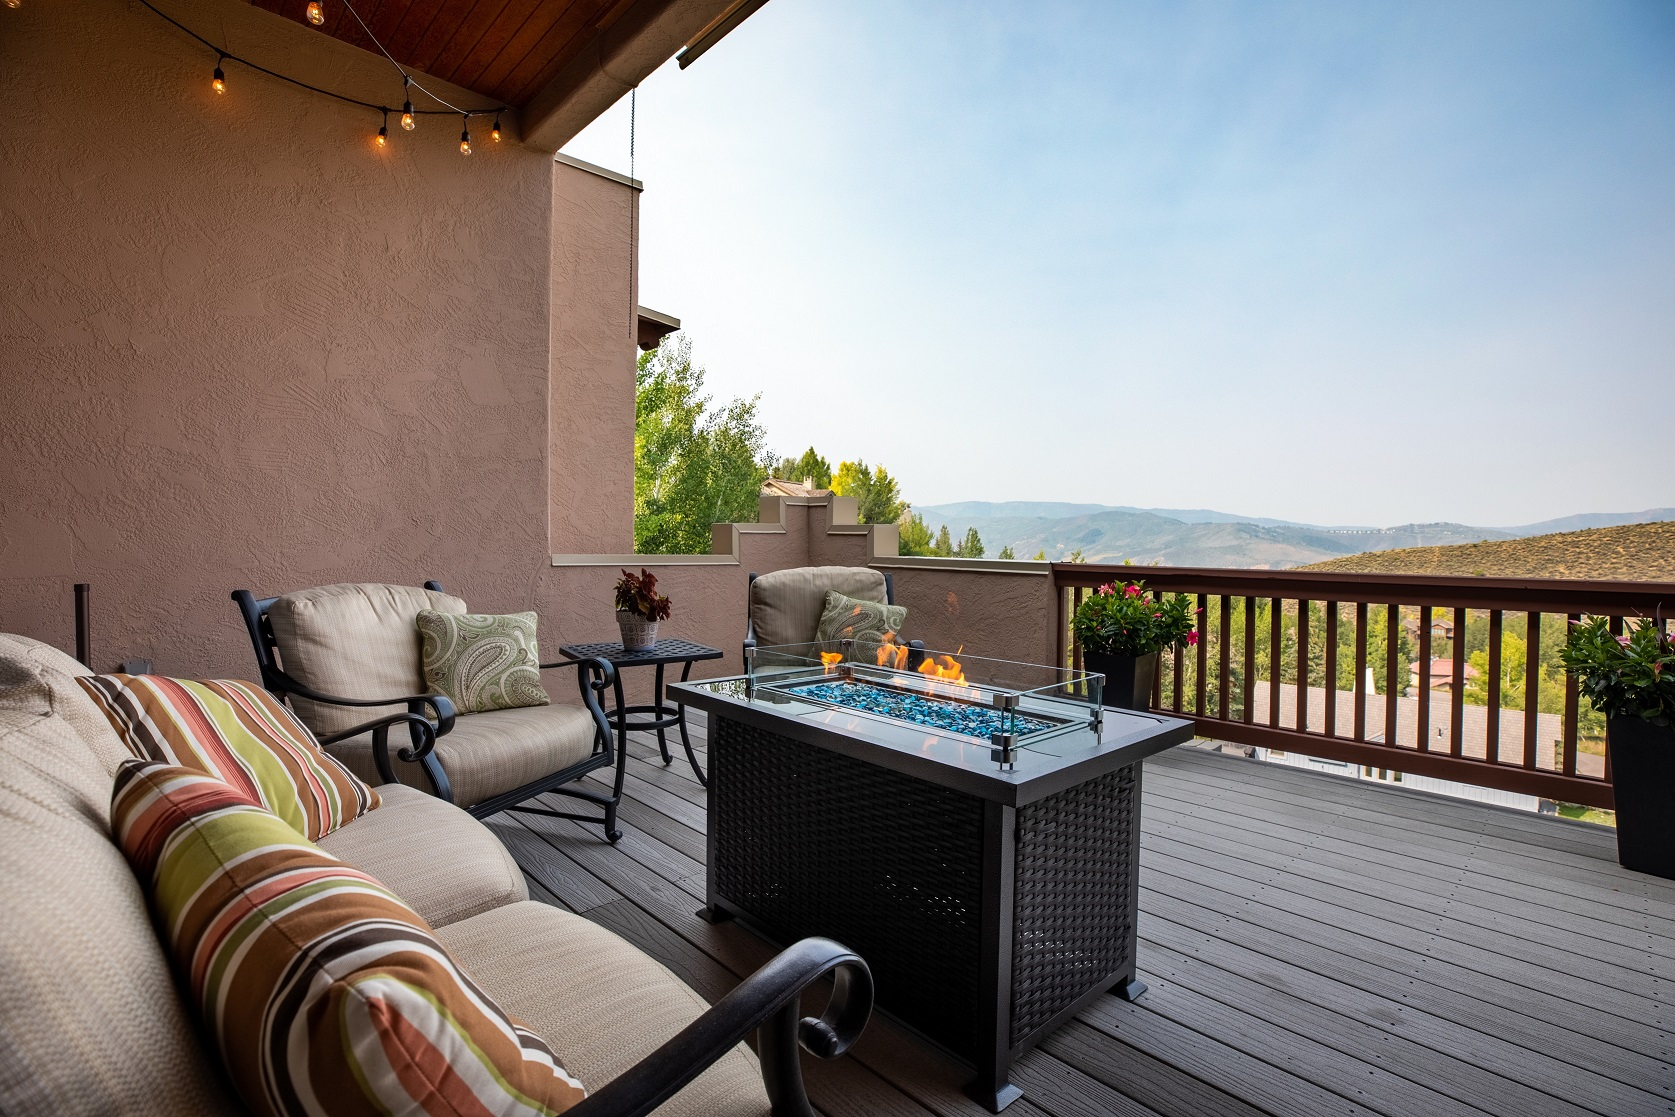 Mountain view from outdoor living space of luxury home